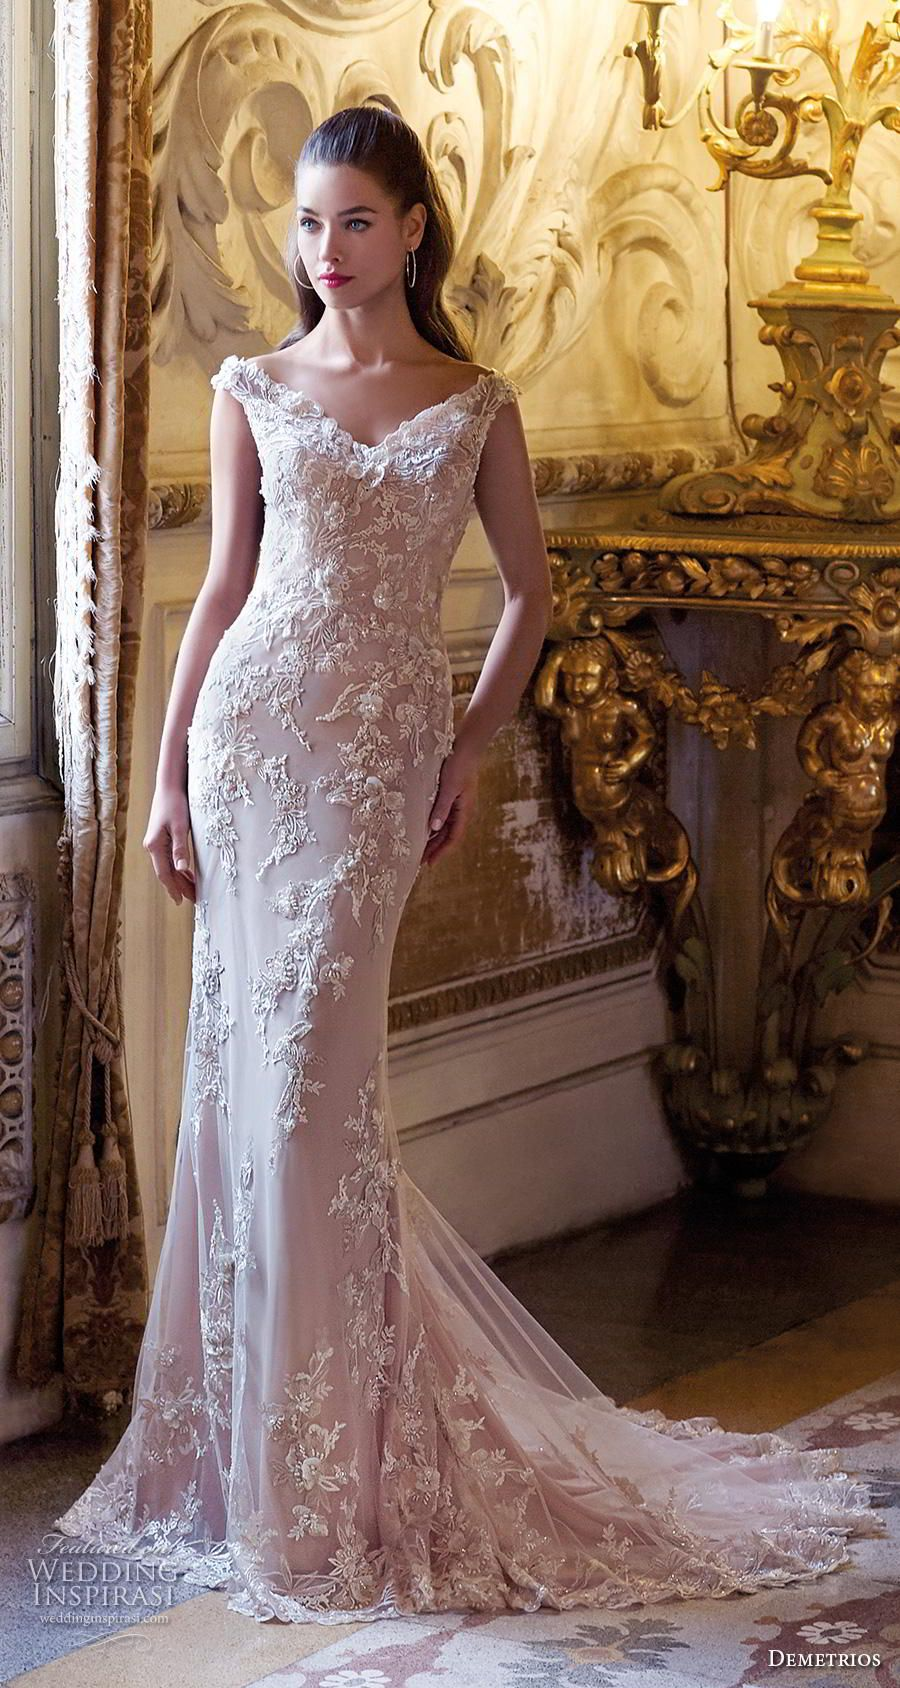 Platinum by demetrios wedding dresses wedding pinterest